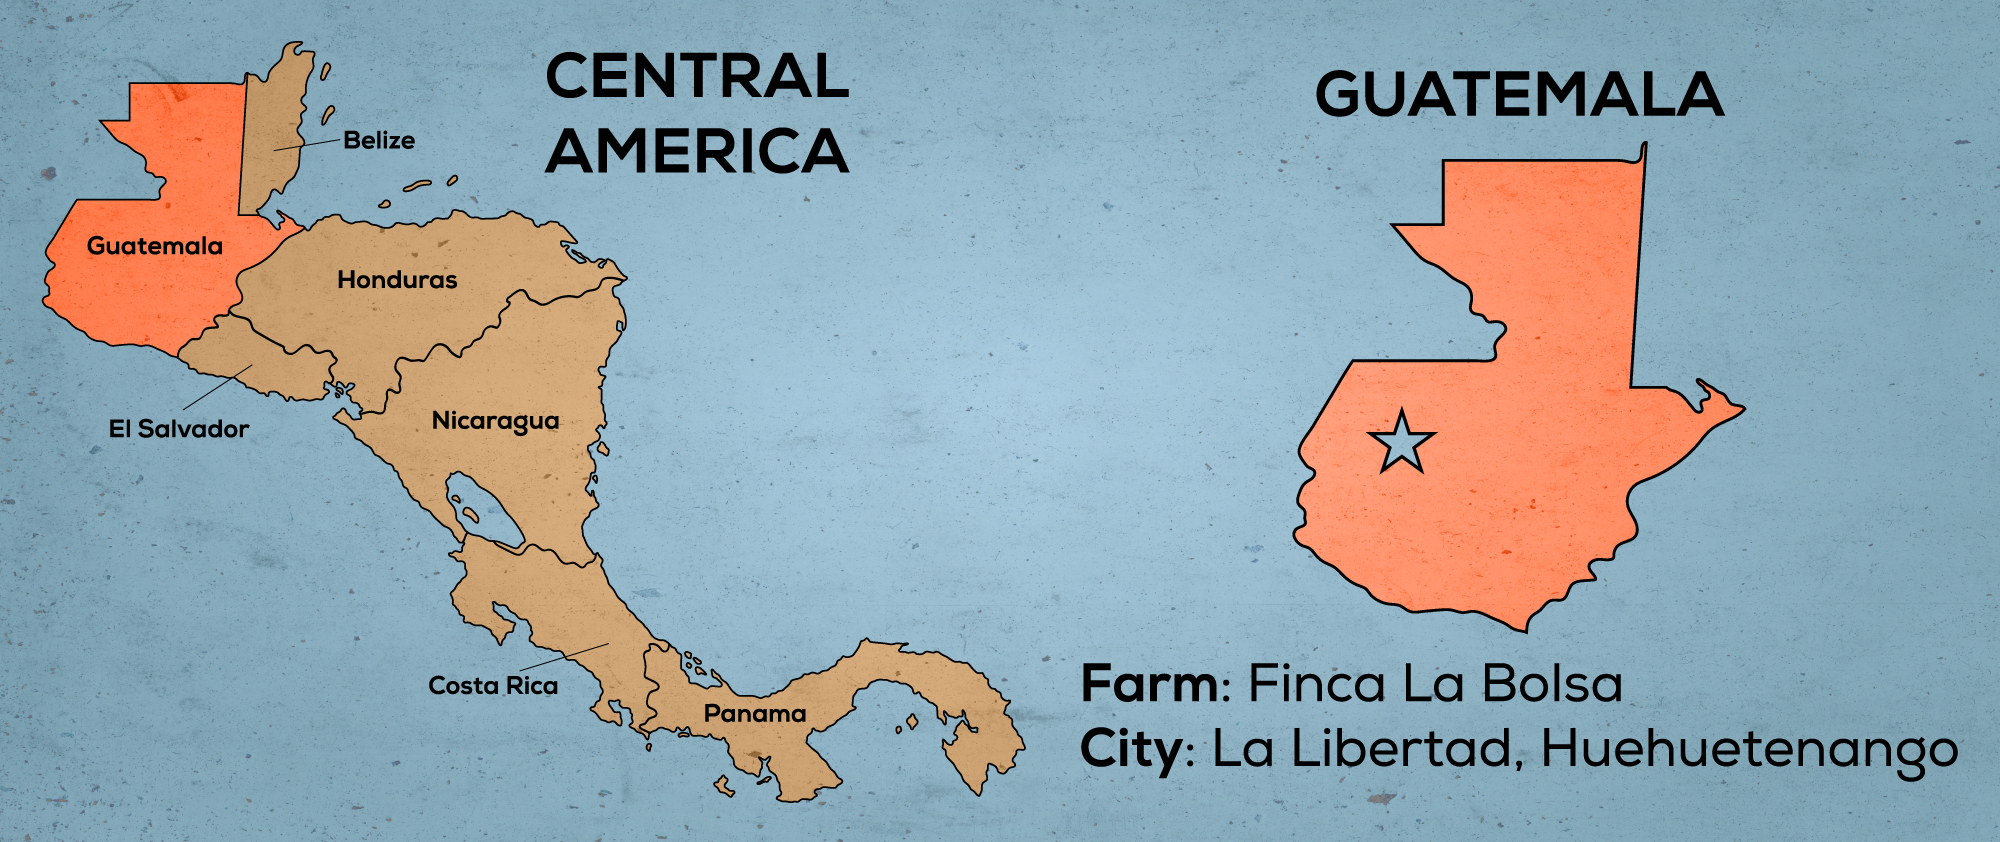 Map of Central America & Guatemala